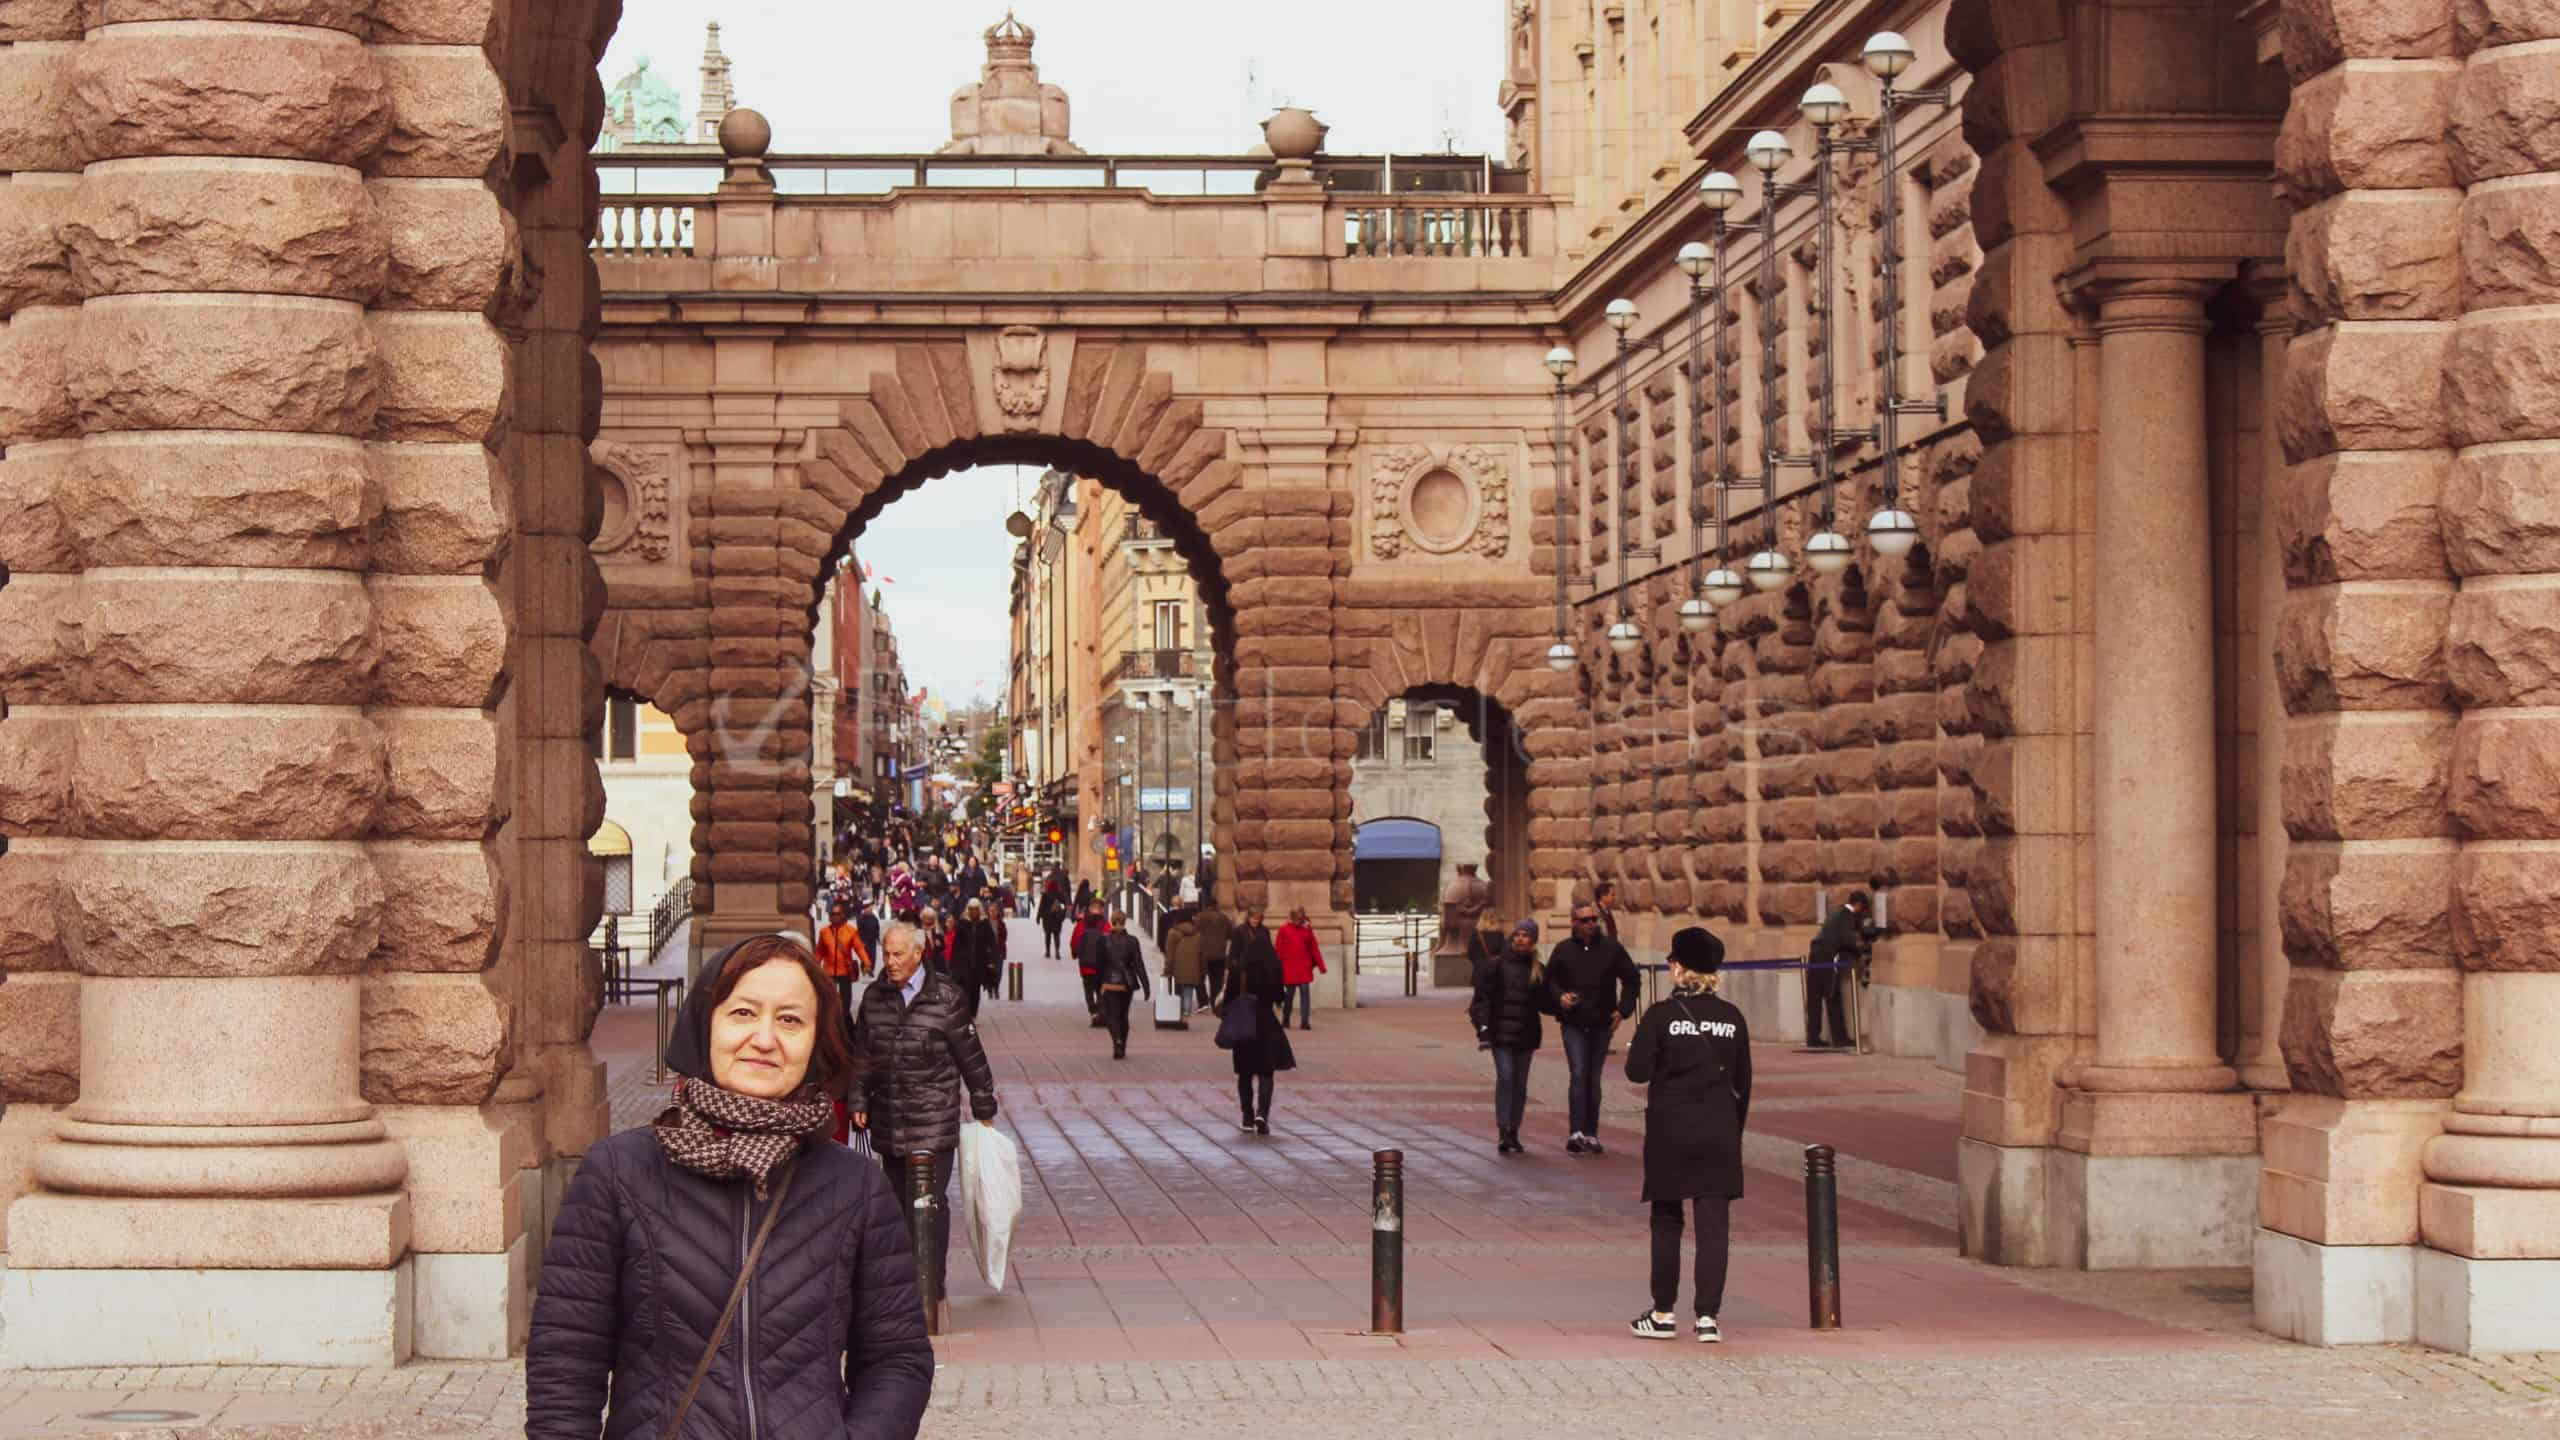 stockholm itinerary - The Parliament House